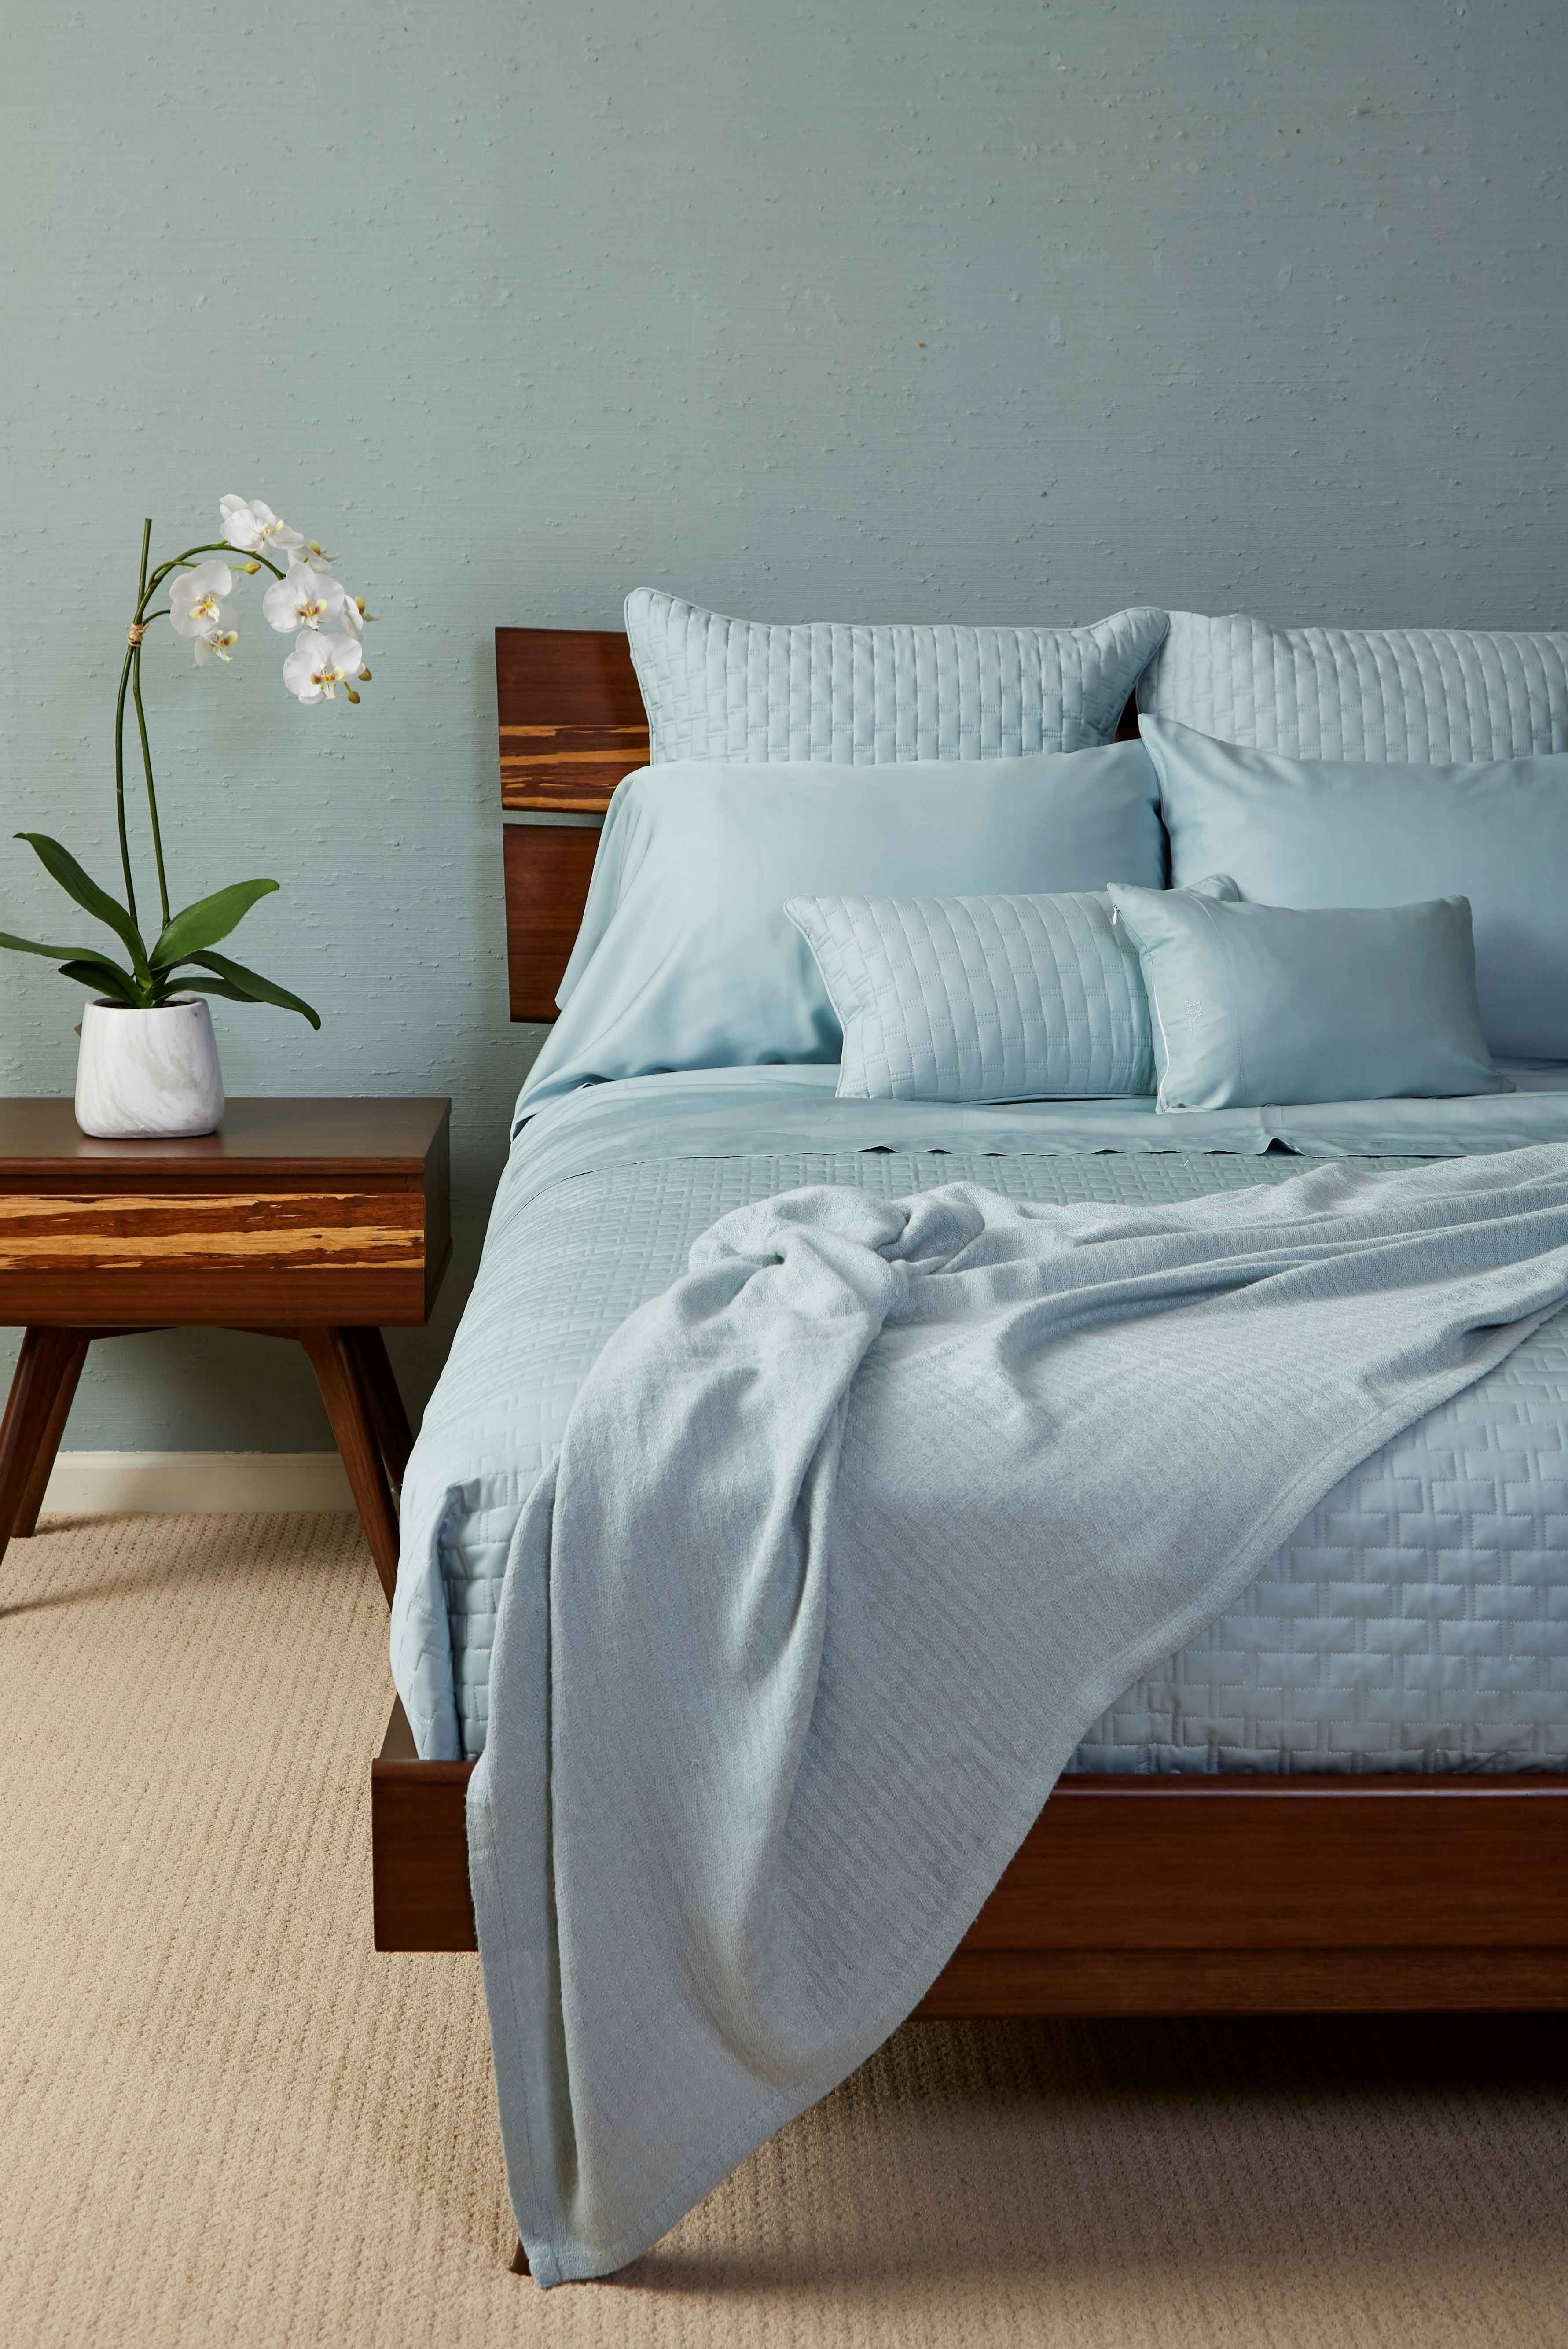 Bedroom Idea In Sky Blue Bamboo Eco Friendly Living And Cozy